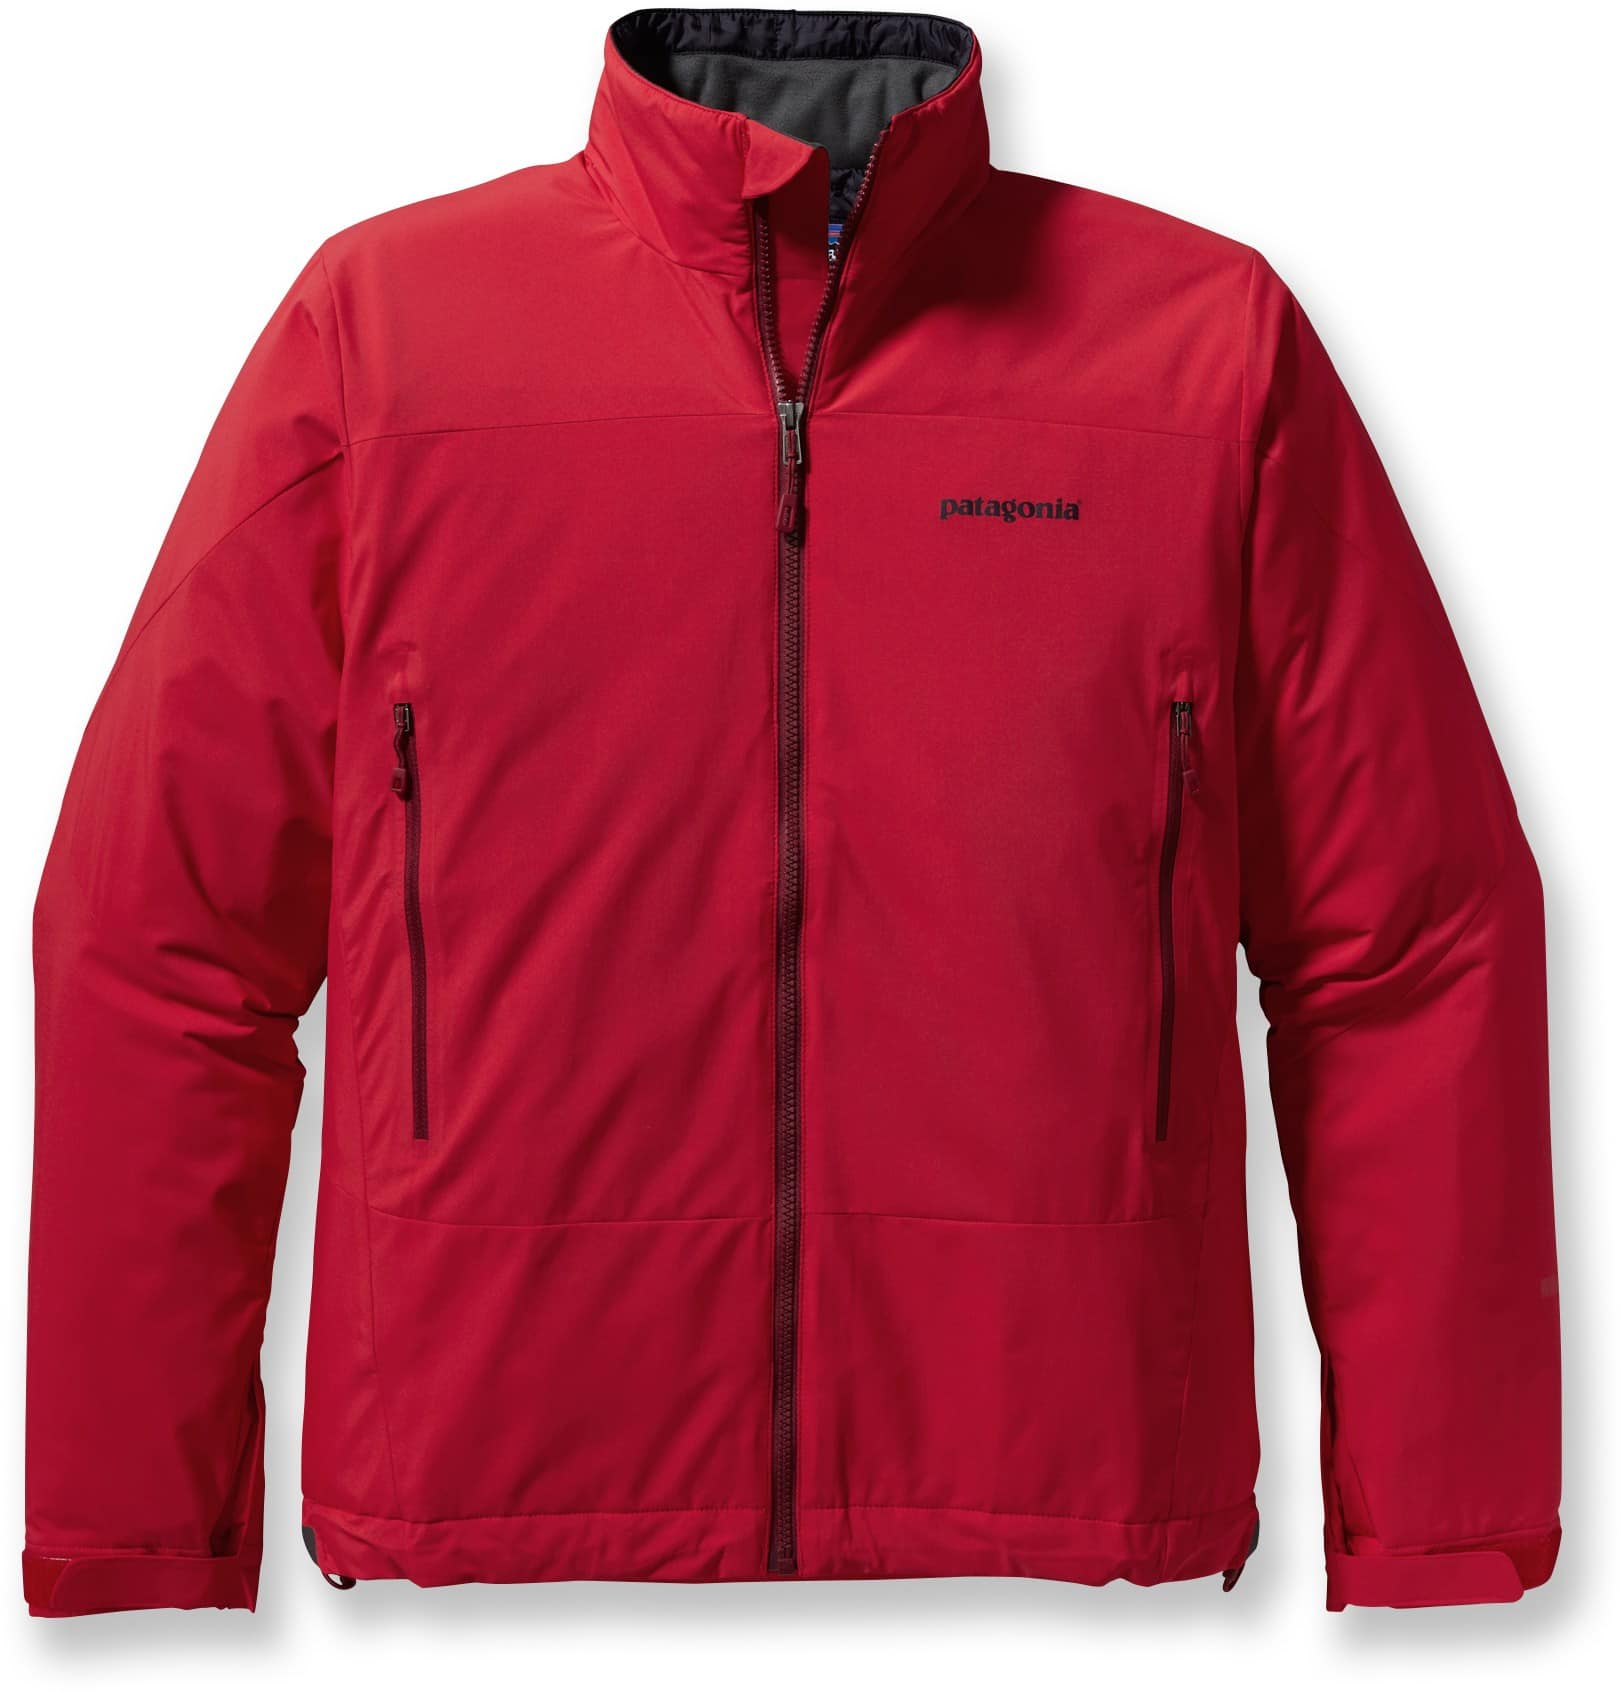 60% off Patagonia, Merrell and Sierra Designs: Men's Patagonia Solar Wind Jacket  $99 & More + Free Shipping on $50+